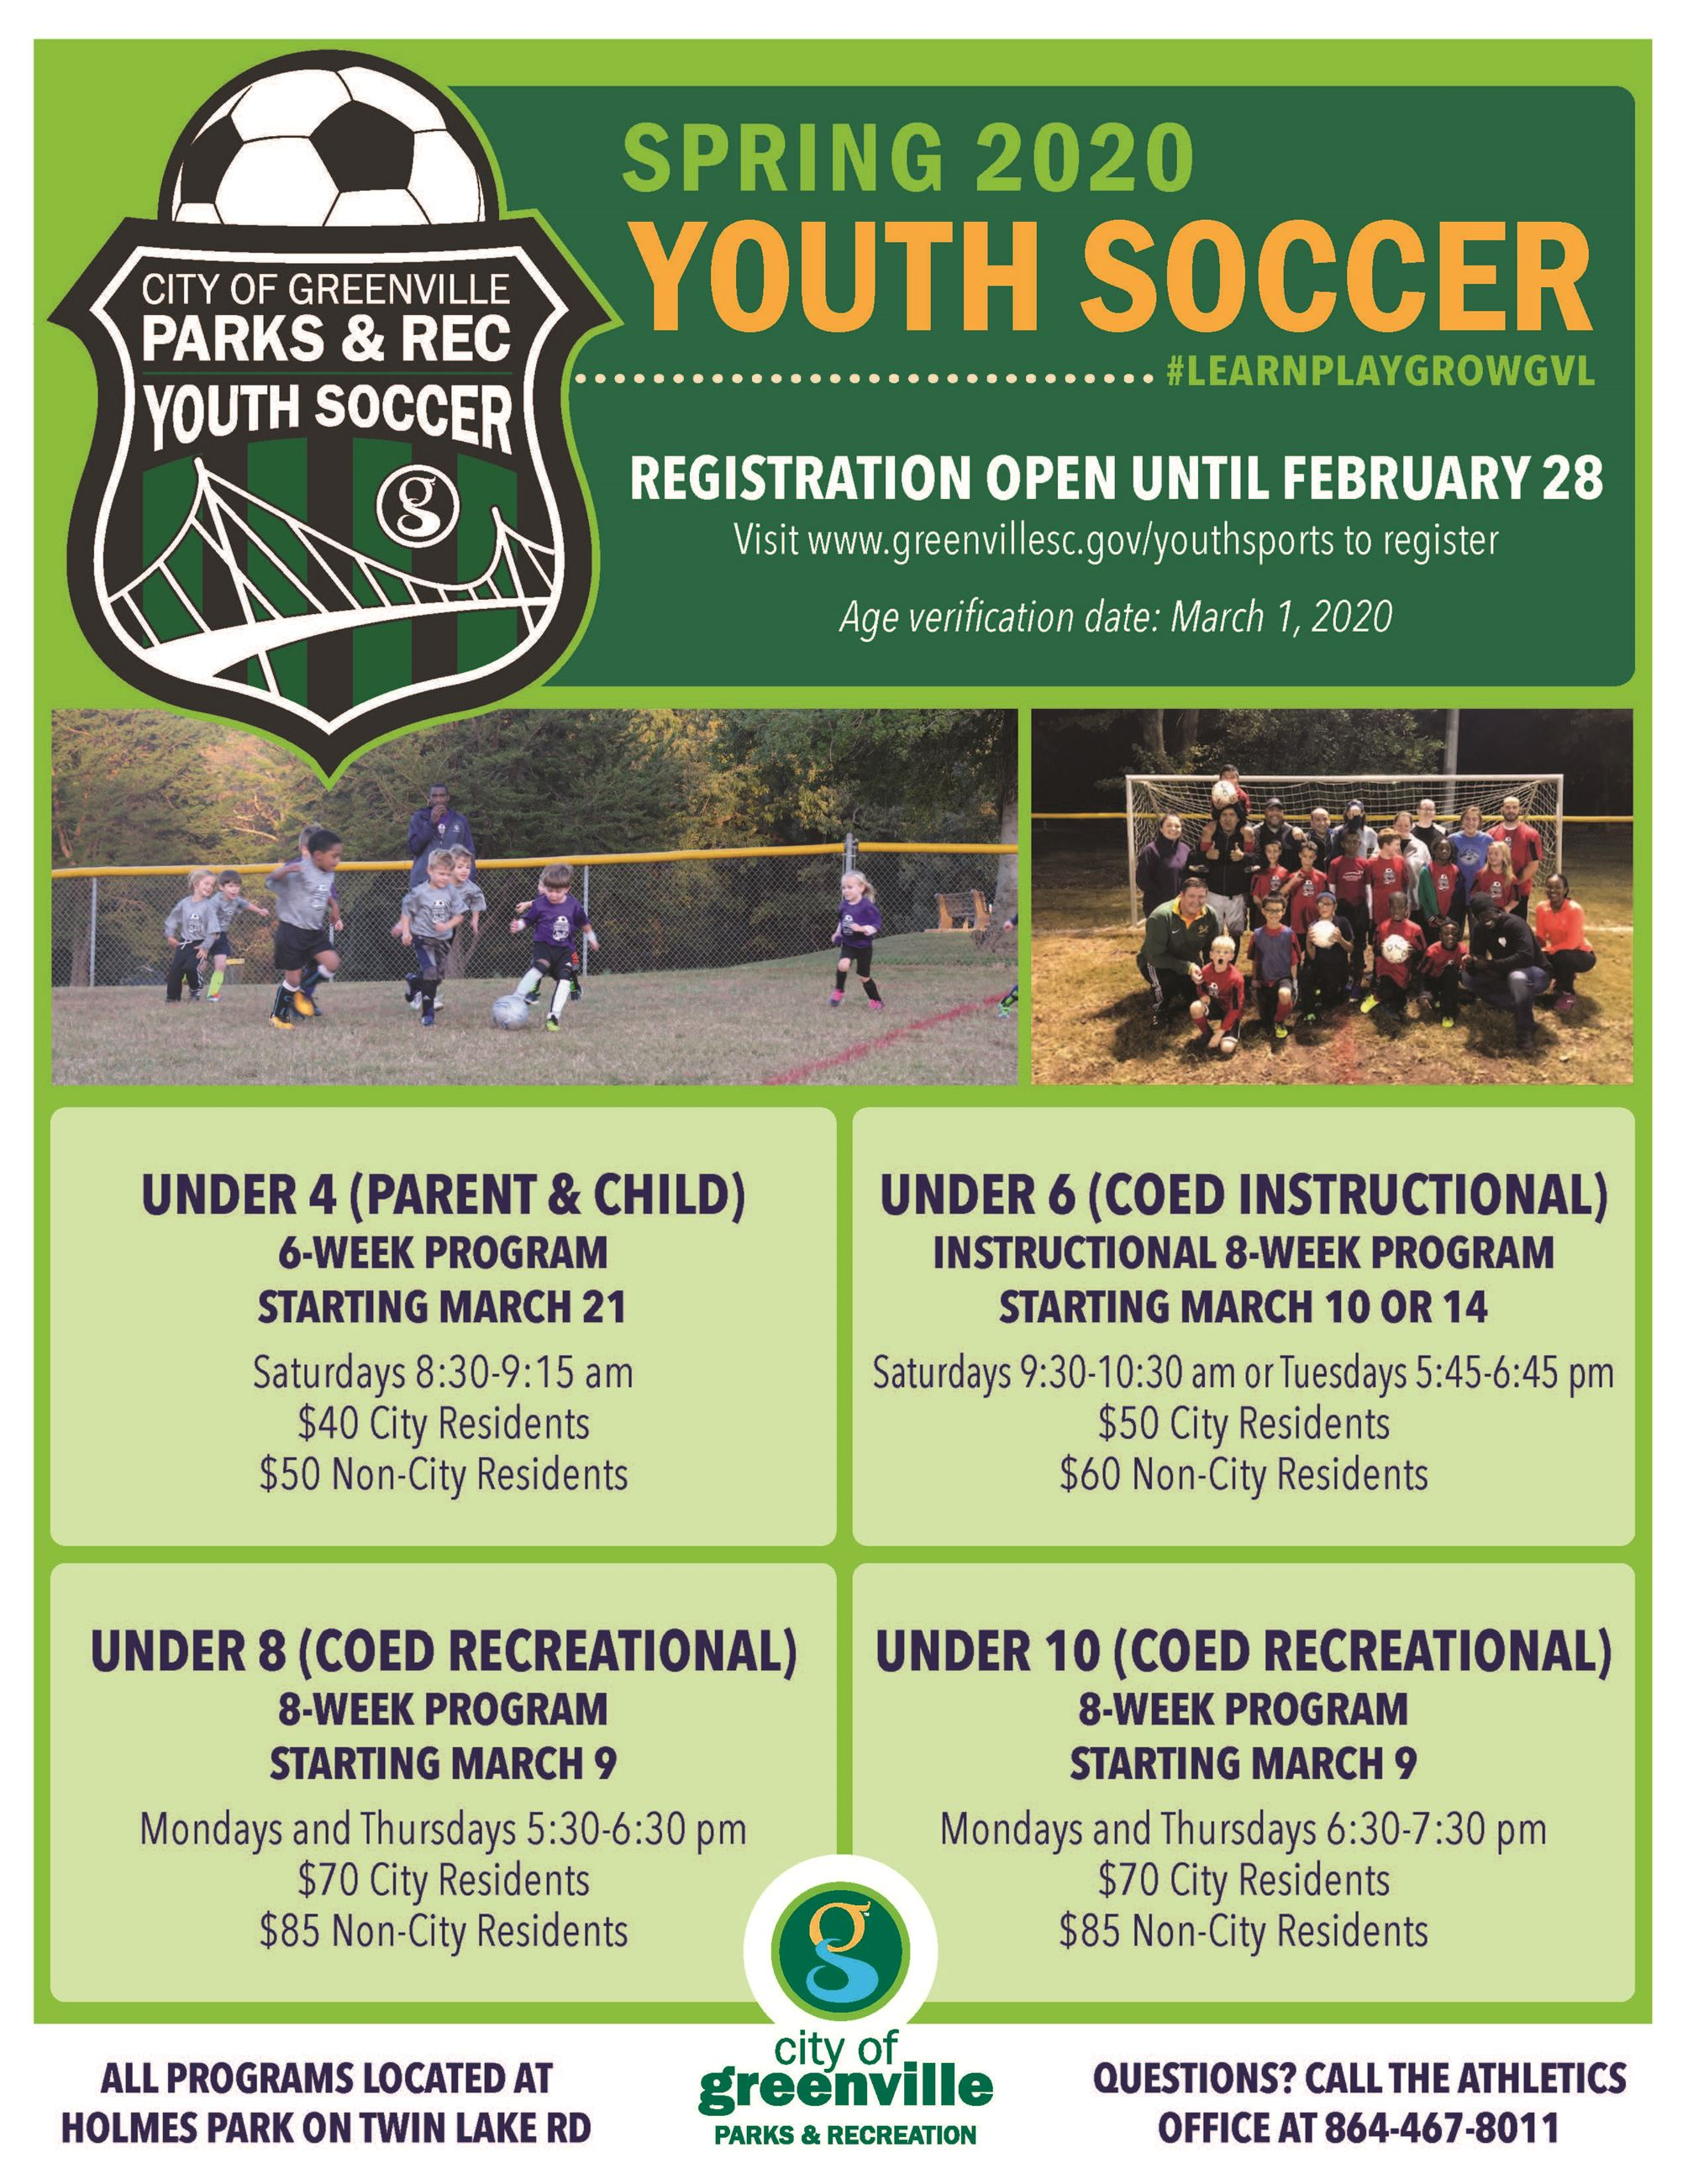 YouthSoccer-SPRING20 Flyer